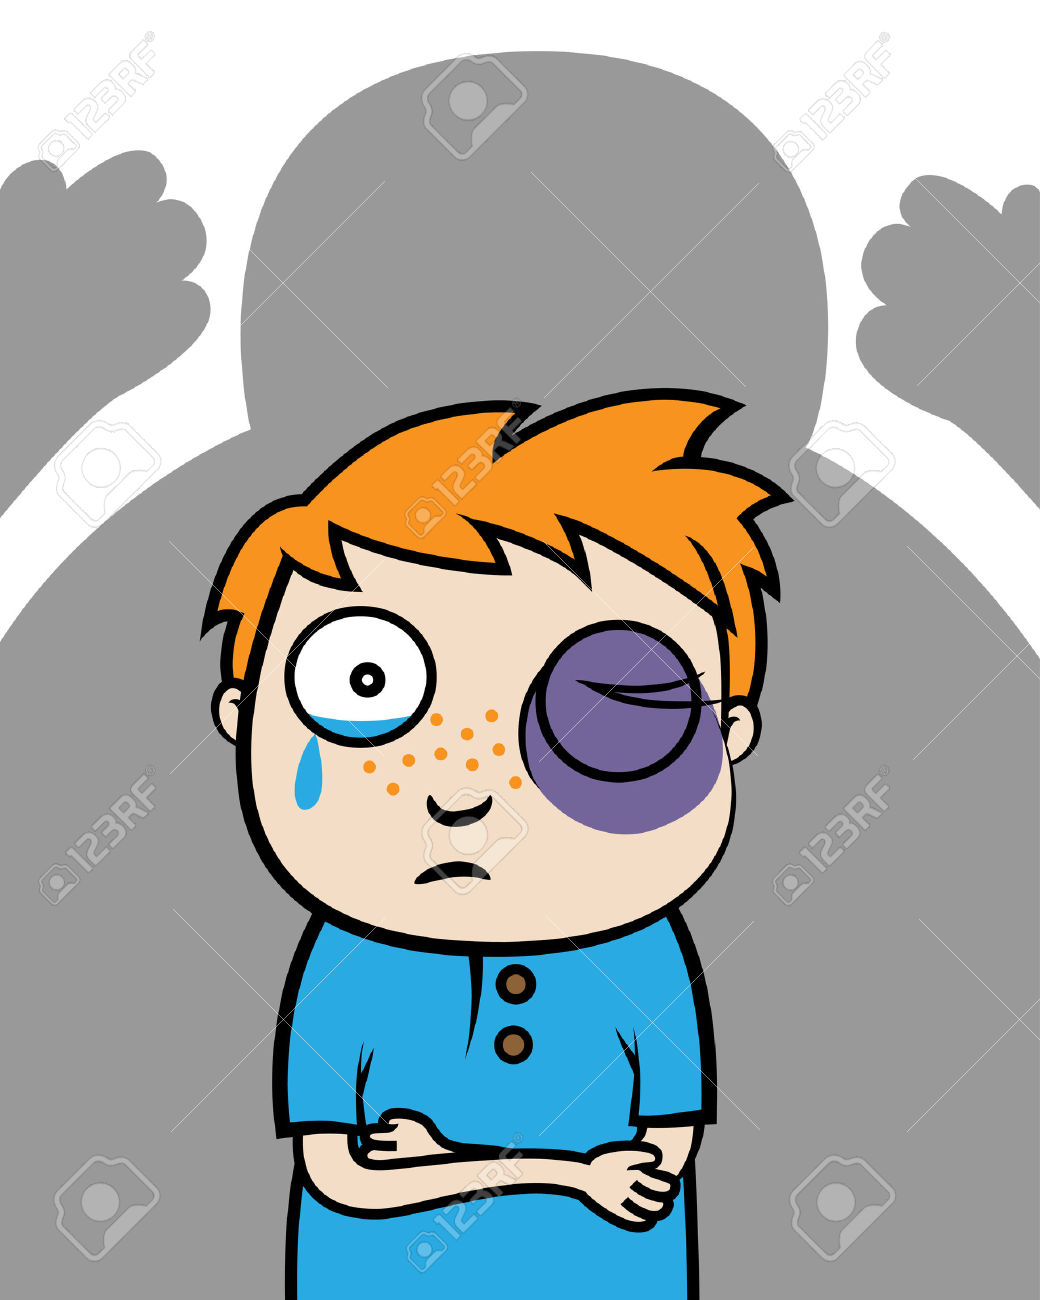 Cartoon pictures of bullies. Bully clipart physical bullying